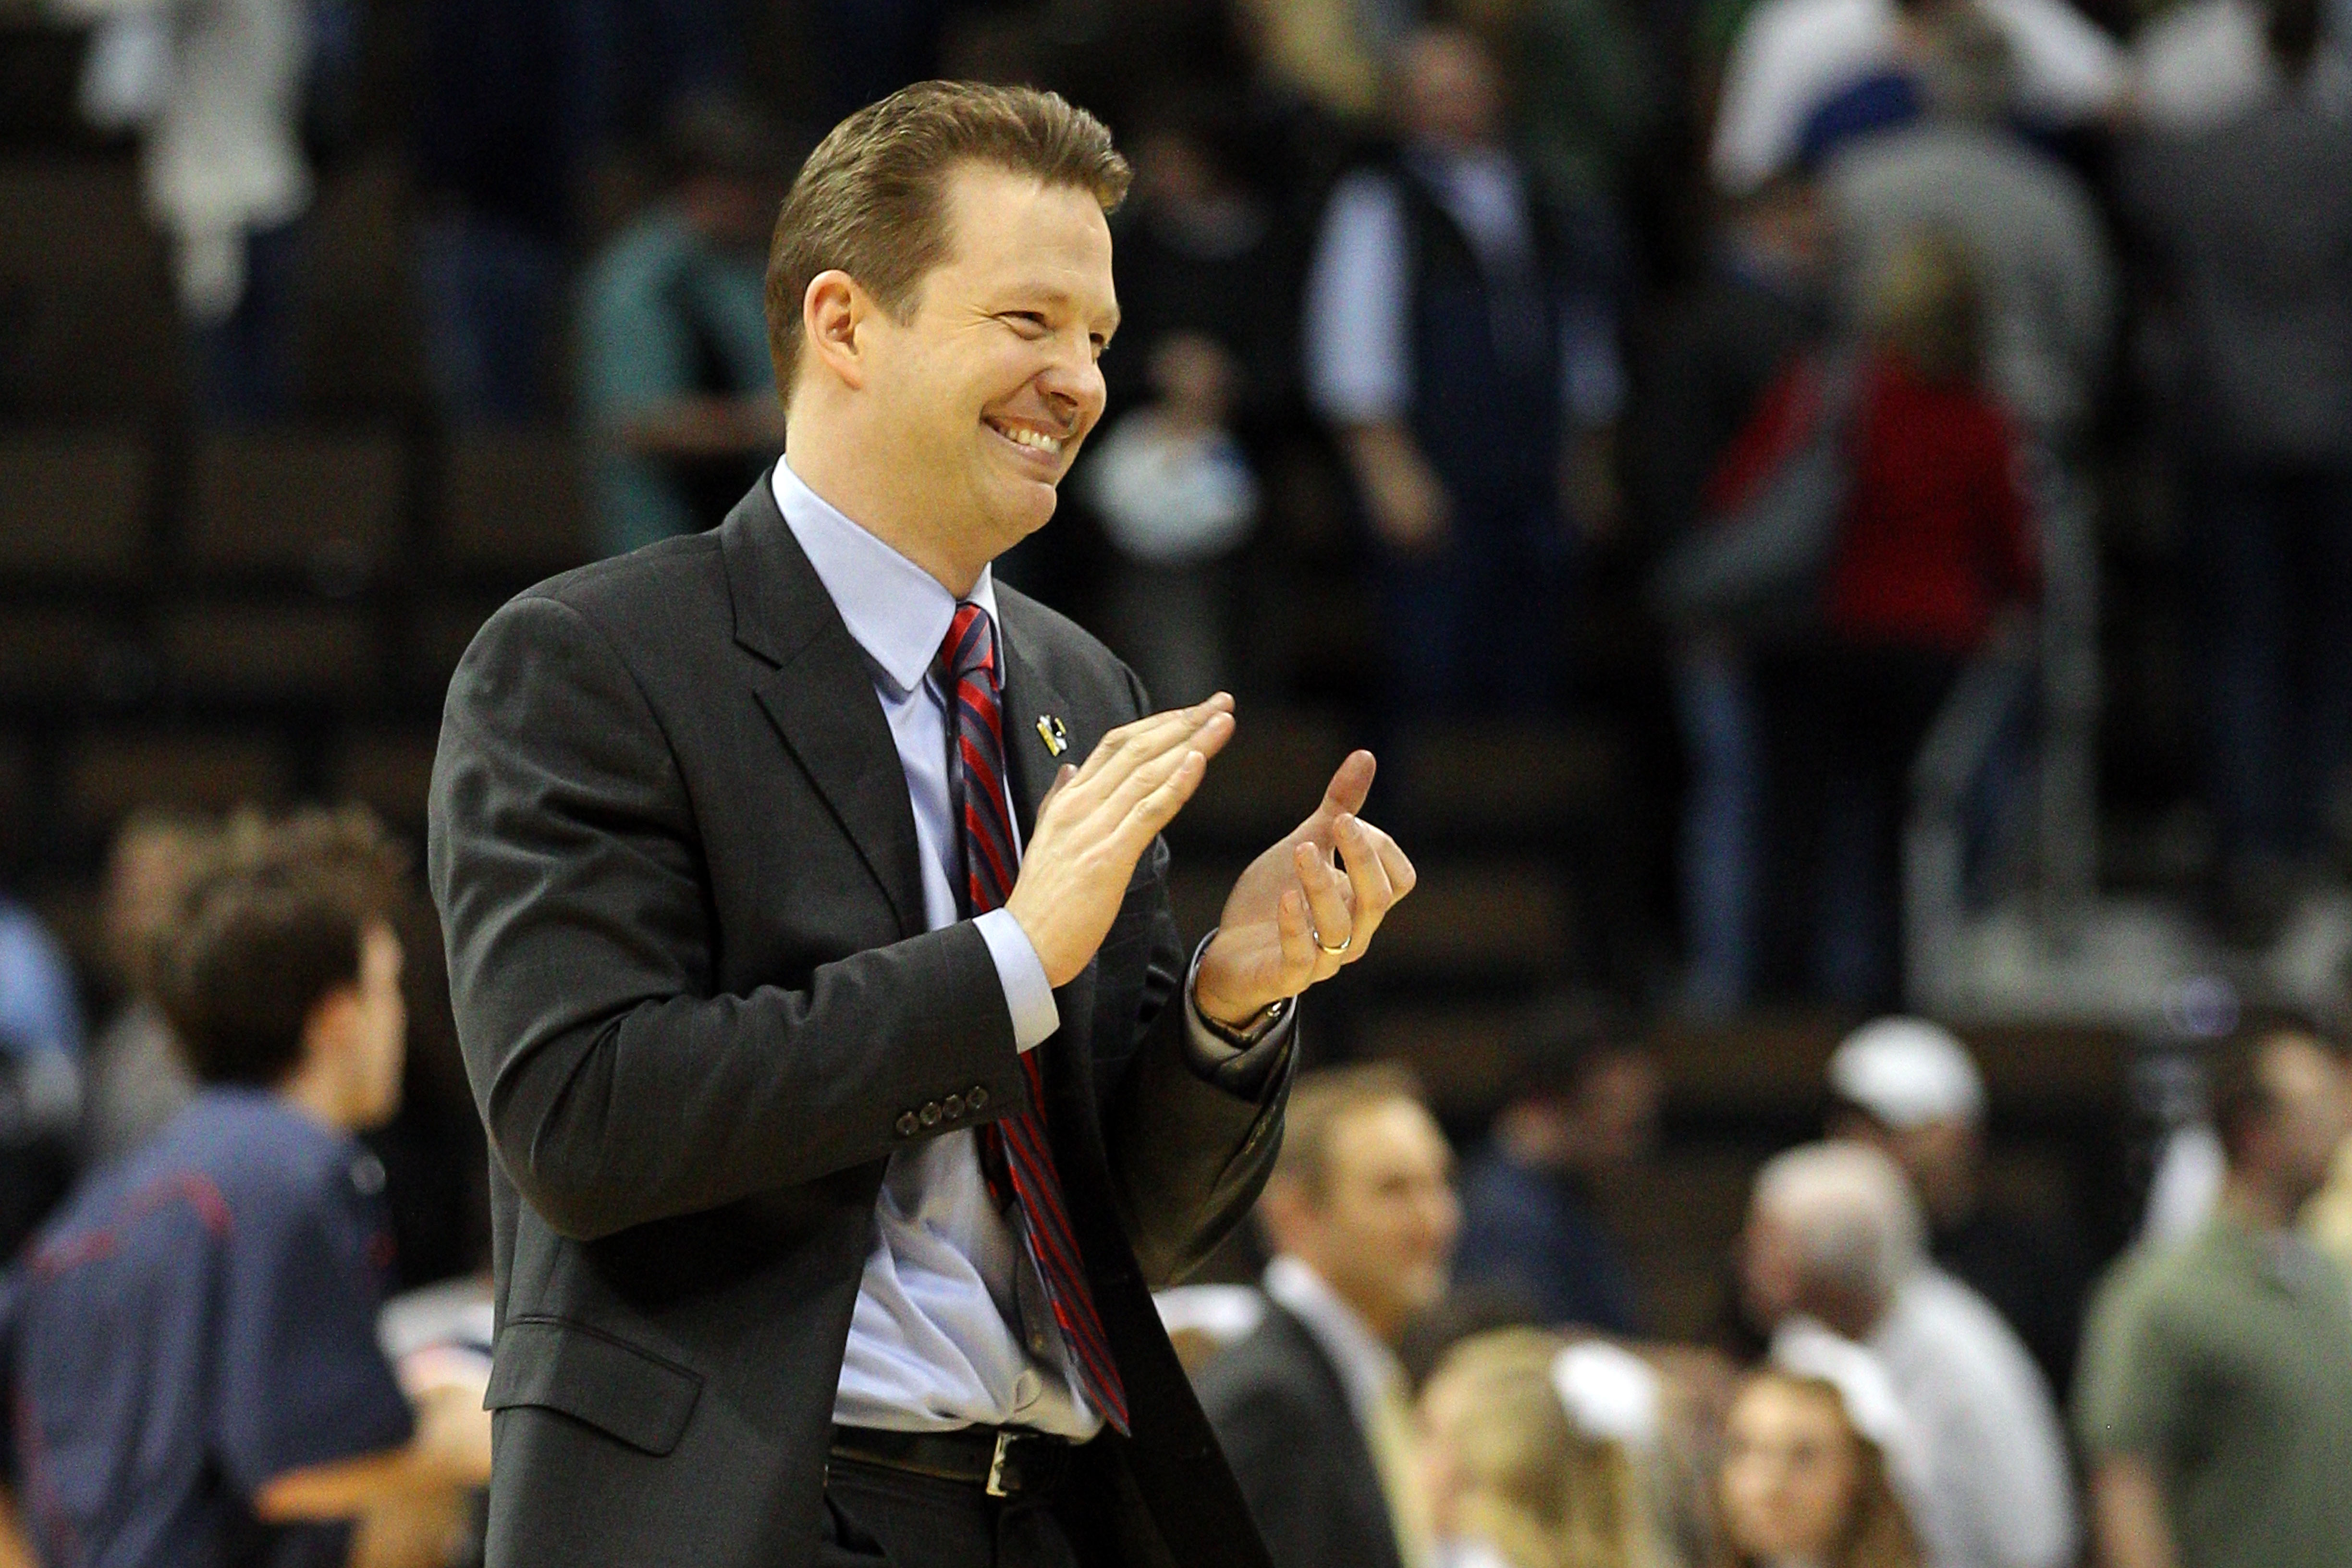 DENVER, CO - MARCH 17:  Head coach Chris Mooney of the Richmond Spiders celebrates after defeating the Vanderbilt Commodores during the second round of the 2011 NCAA men's basketball tournament at Pepsi Center on March 17, 2011 in Denver, Colorado. Richmo